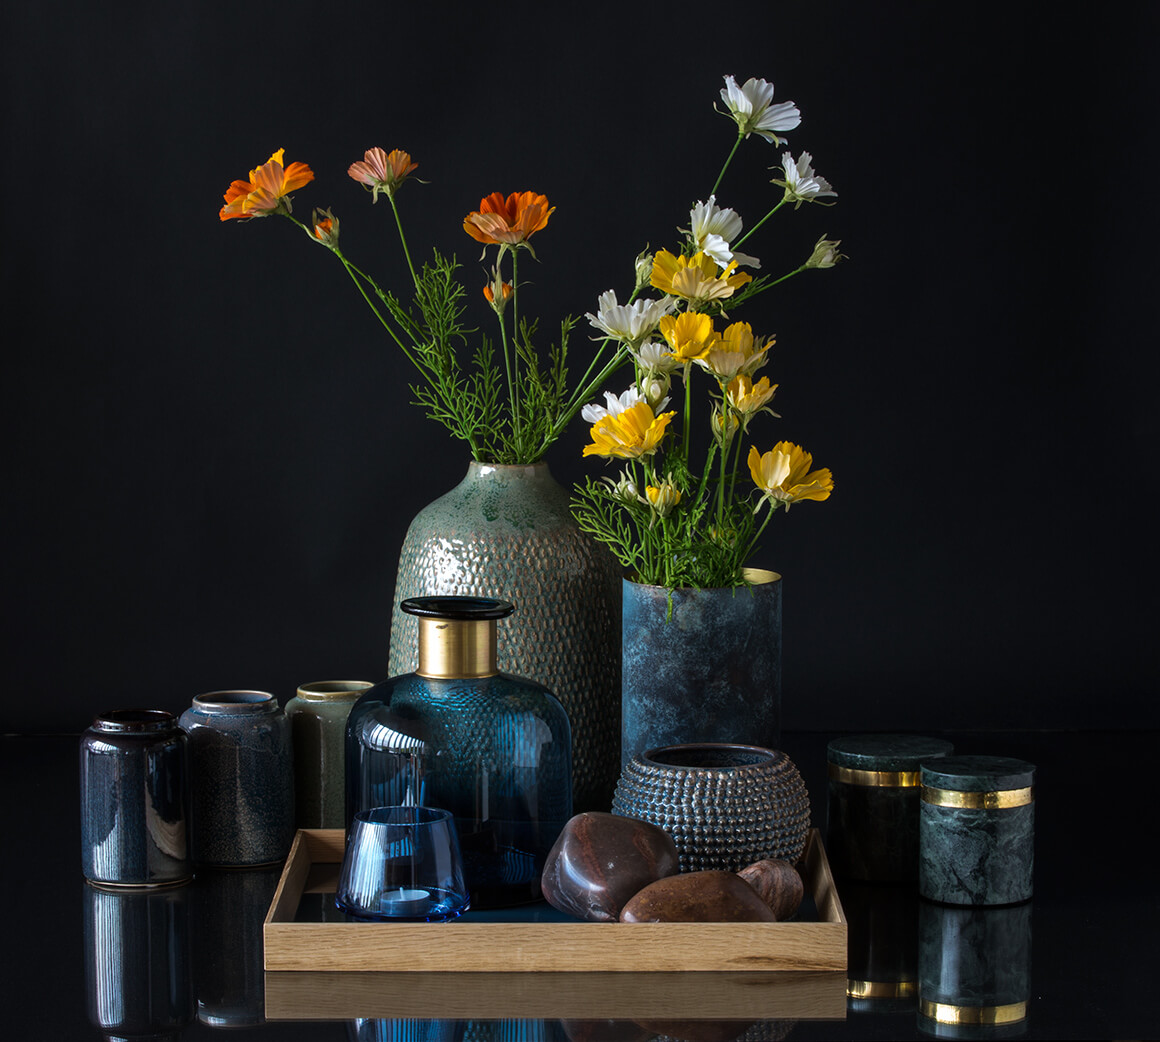 Large vase with blue bottle and small flower pot on tray with vases and marble jars